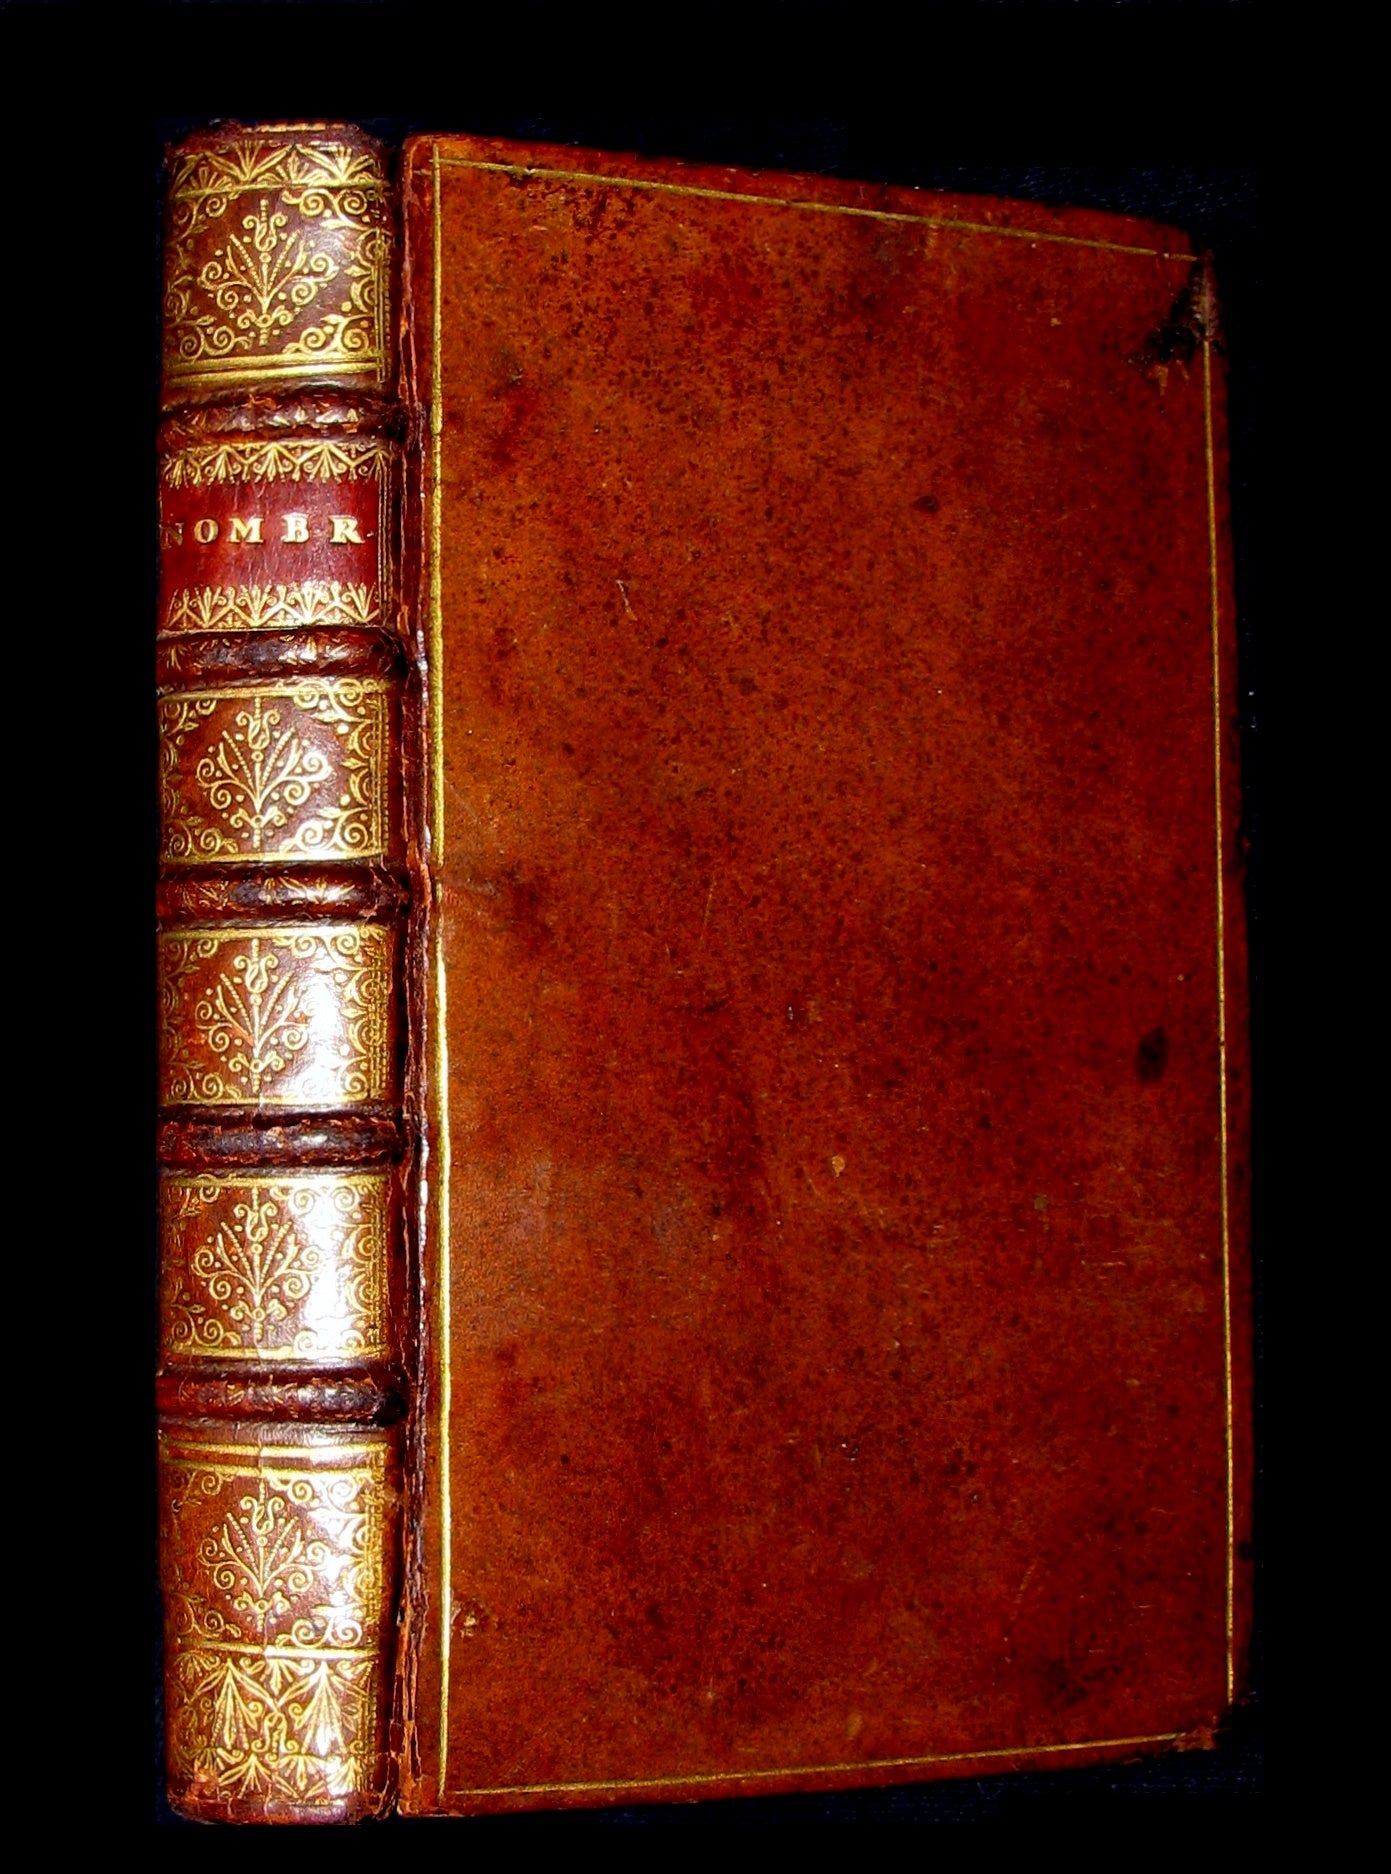 1697 Rare Latin French Bible - The Book of Numbers - Les NOMBRES by Le Maistre de Sacy